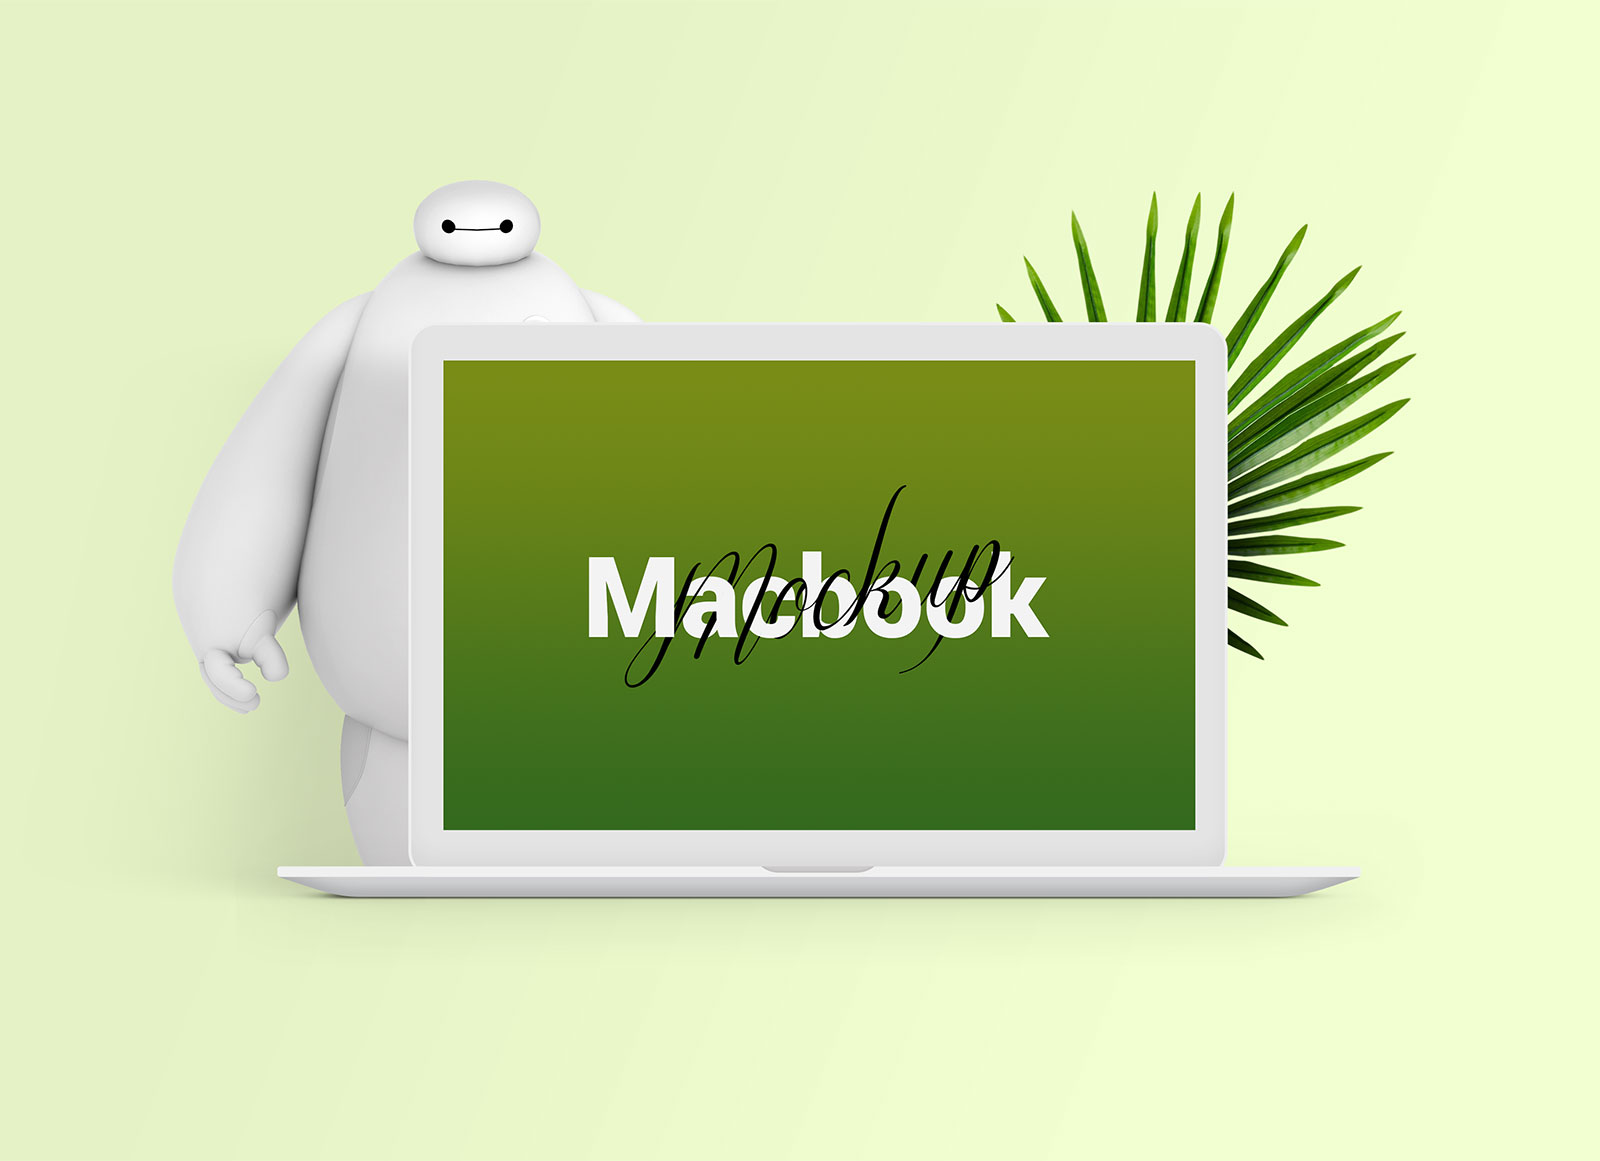 Free-White-Apple-Macbook-Mockup-PSD